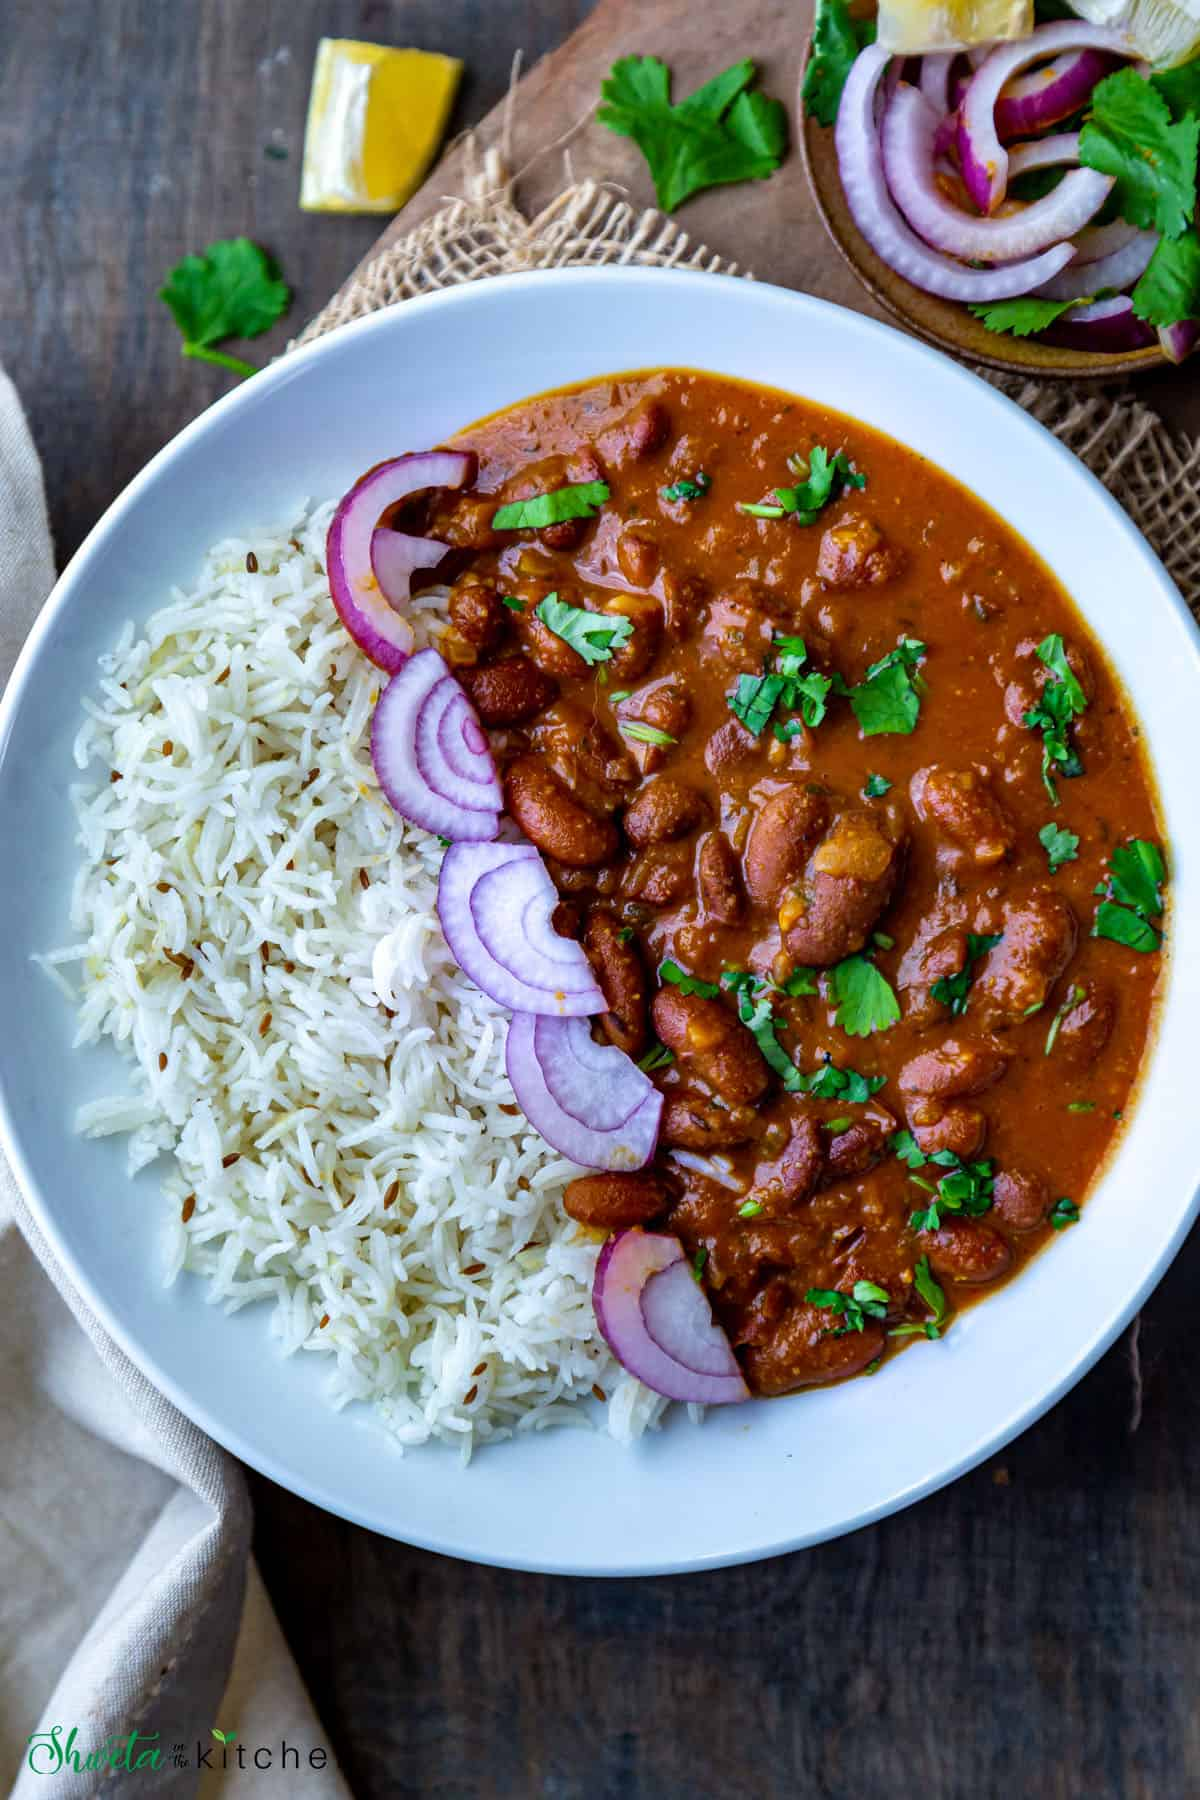 White bowl of rajma chawal (red kidney beans curry with rice) with onions in middle